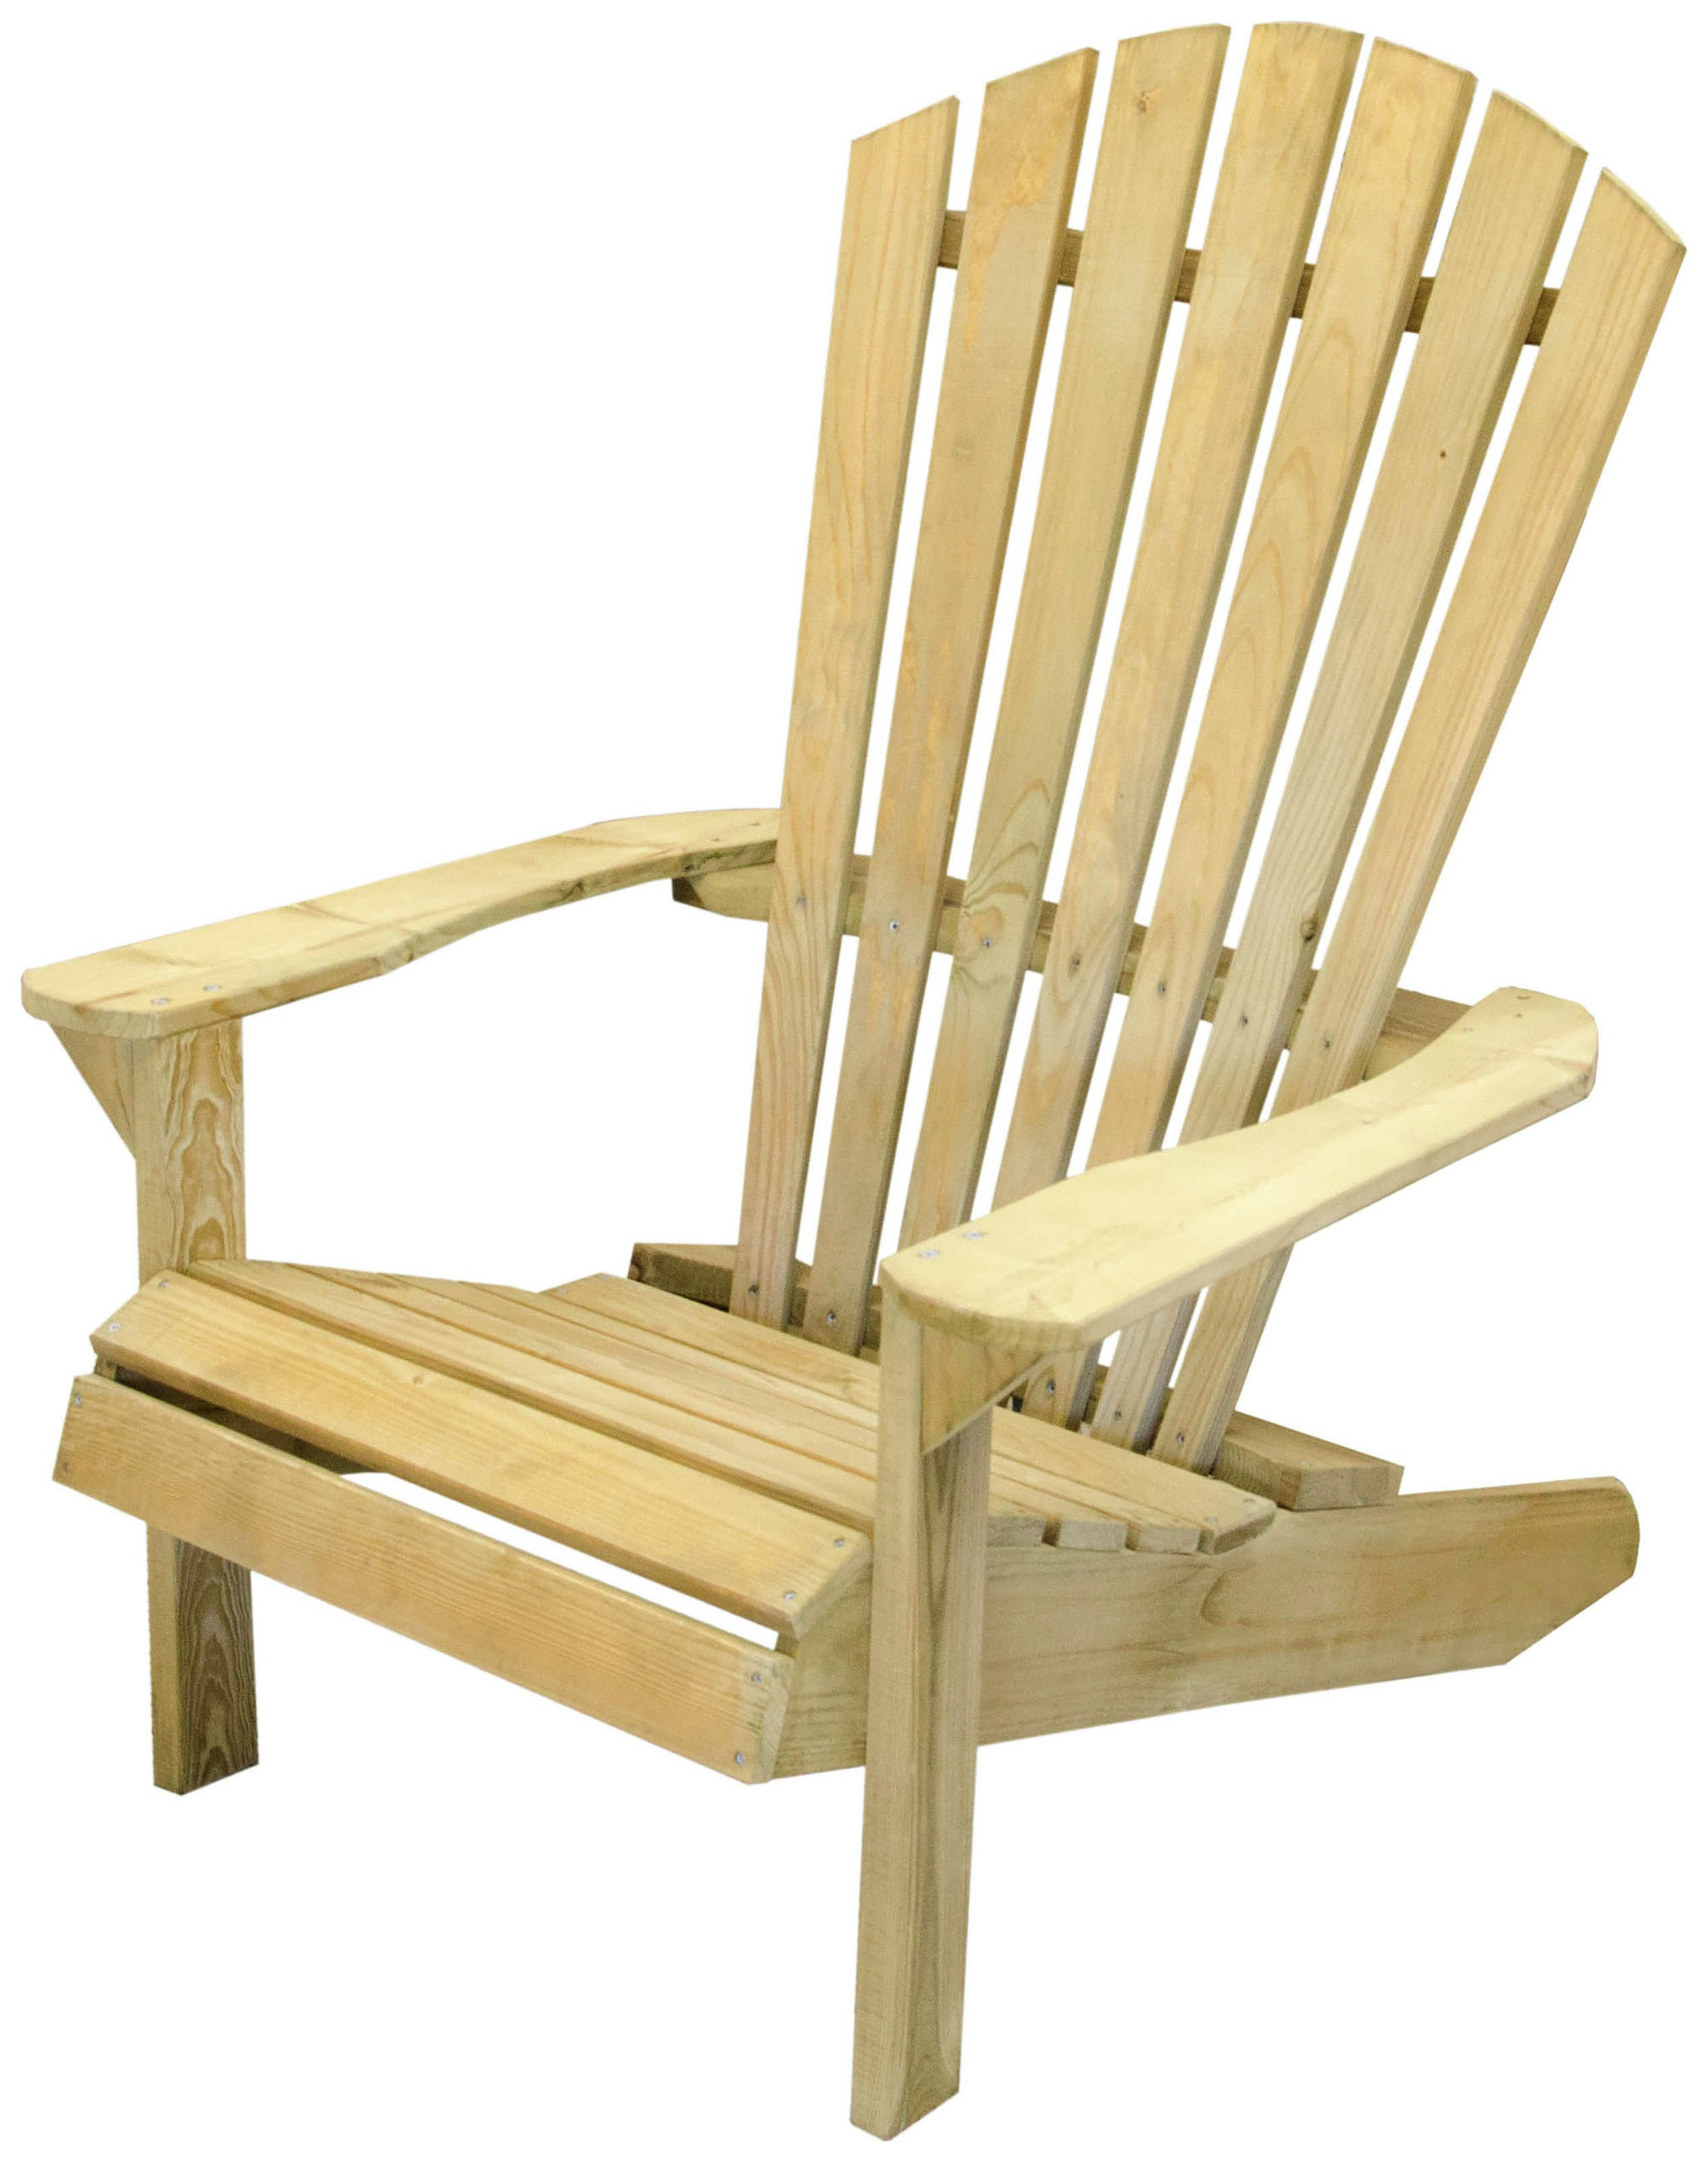 Forest Saratoga Wooden Garden Chair Best Price, Cheapest Prices